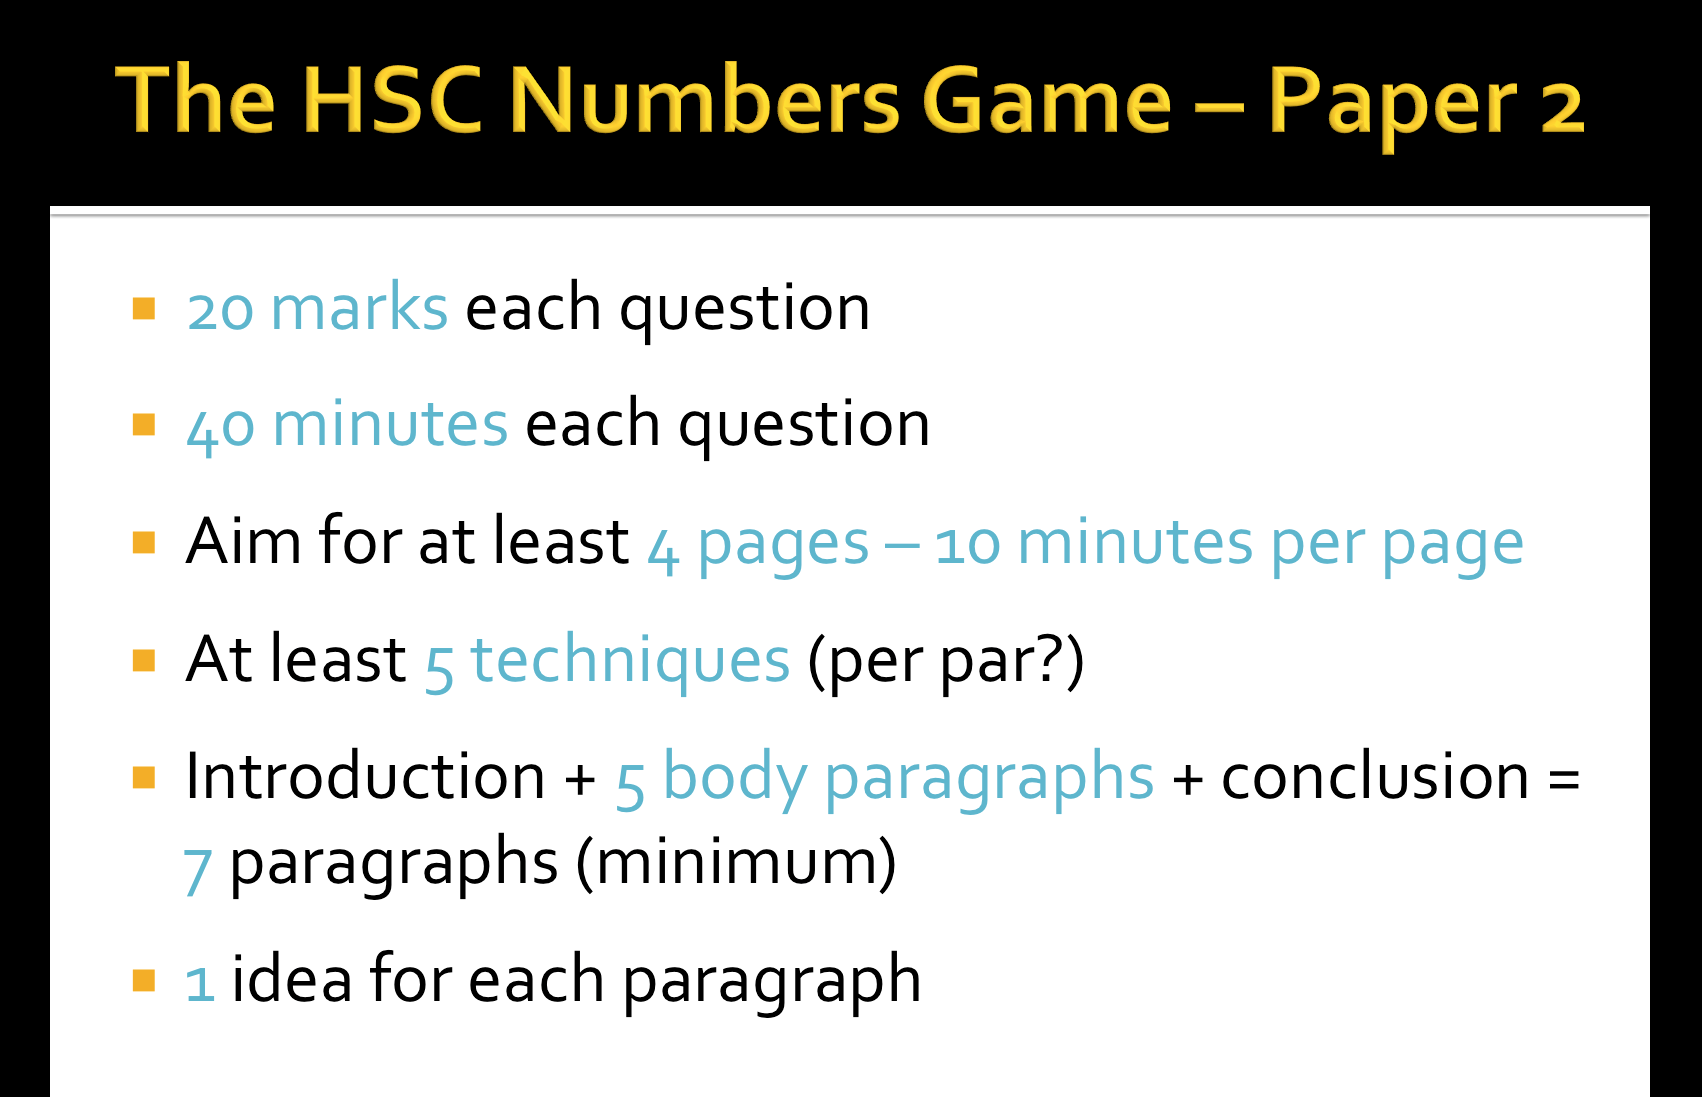 HSC numbers game Multimodal Me WordPress com